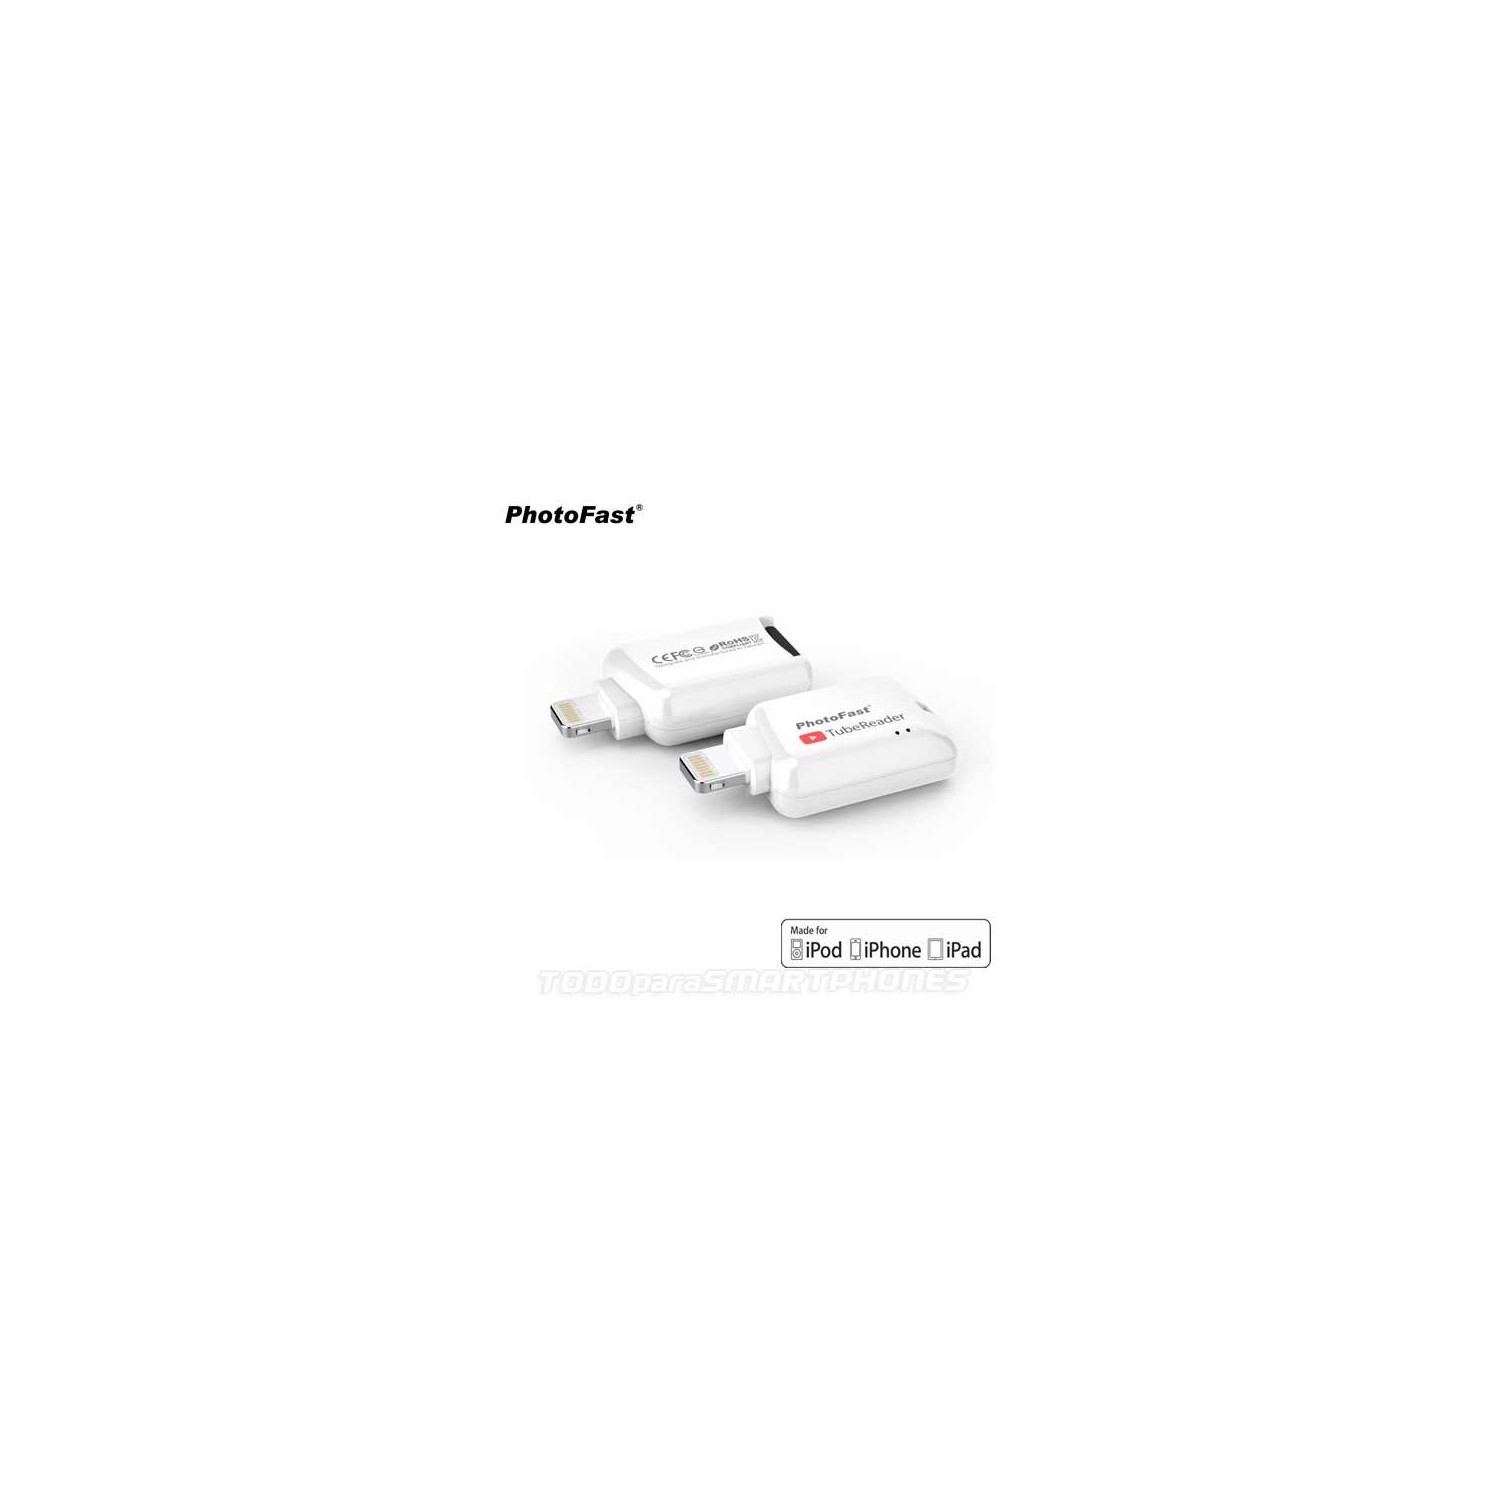 Lector Memoria PHOTOFAST TubeReader iOS Lightning Micro SD certificado Apple MFI memoria para iPhone iPad iPod - Blanco